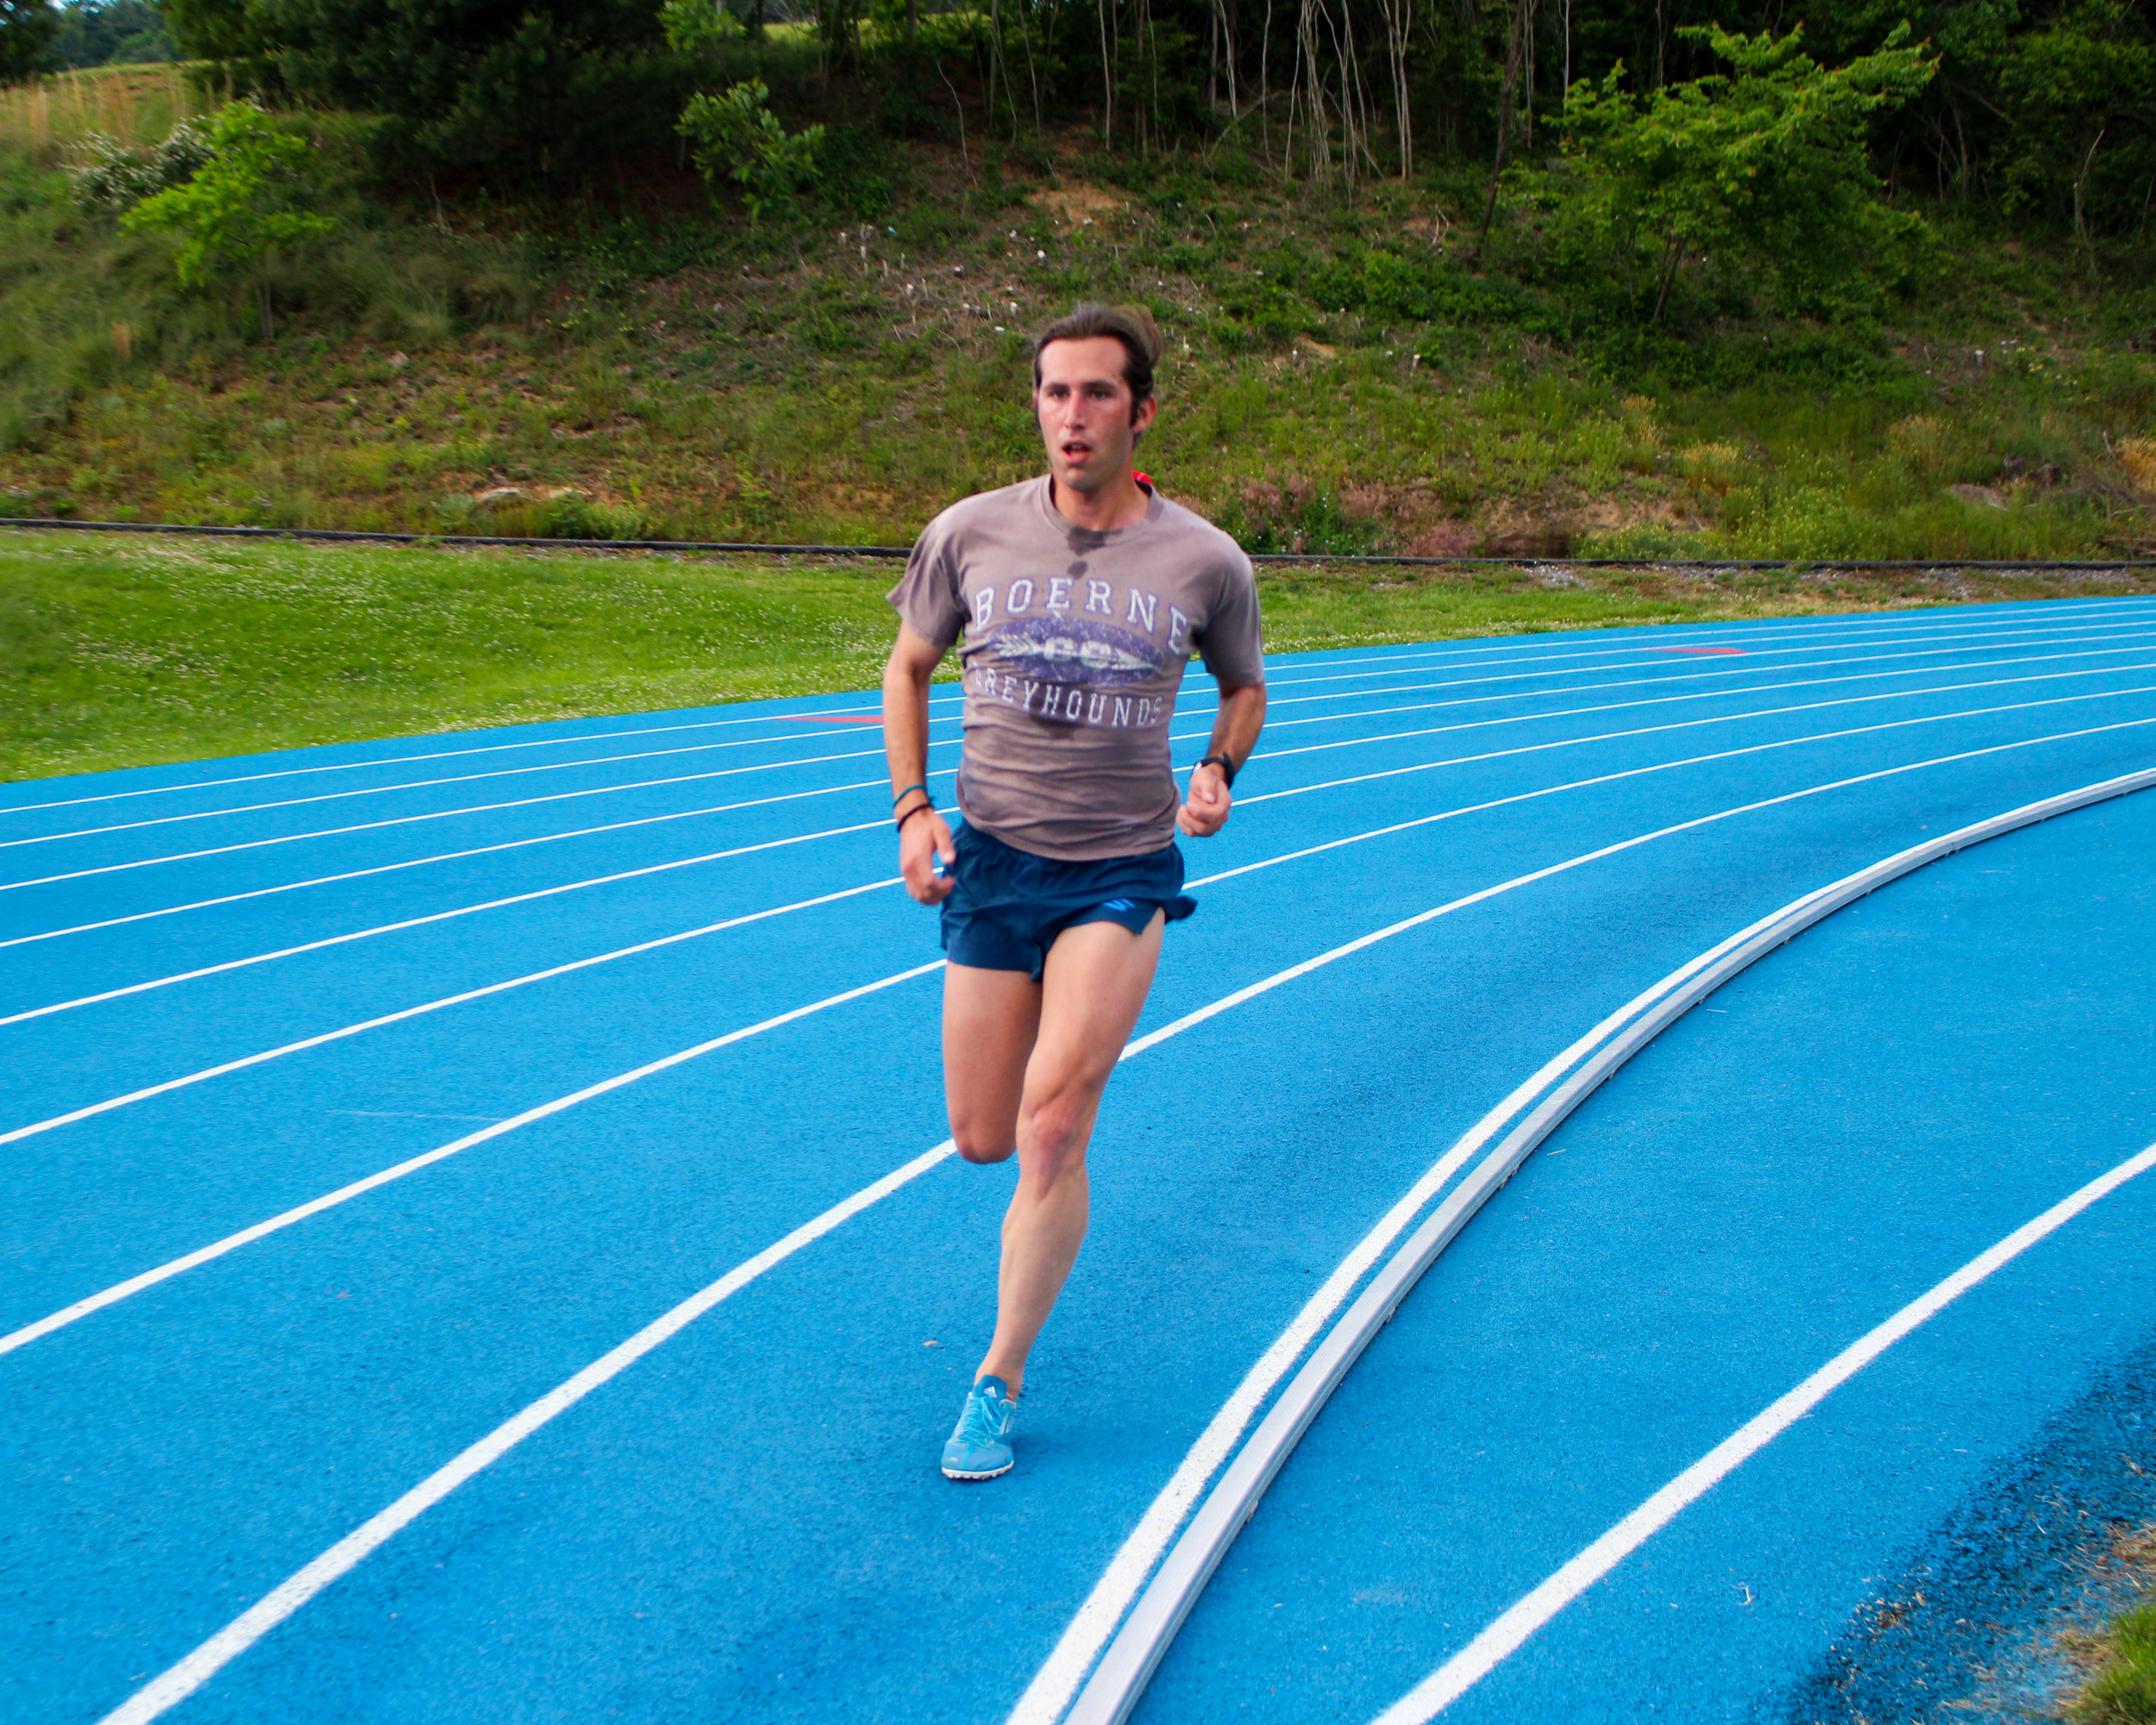 Chass Armstrong rounding the track in one of his recent marathon tune-up workouts.